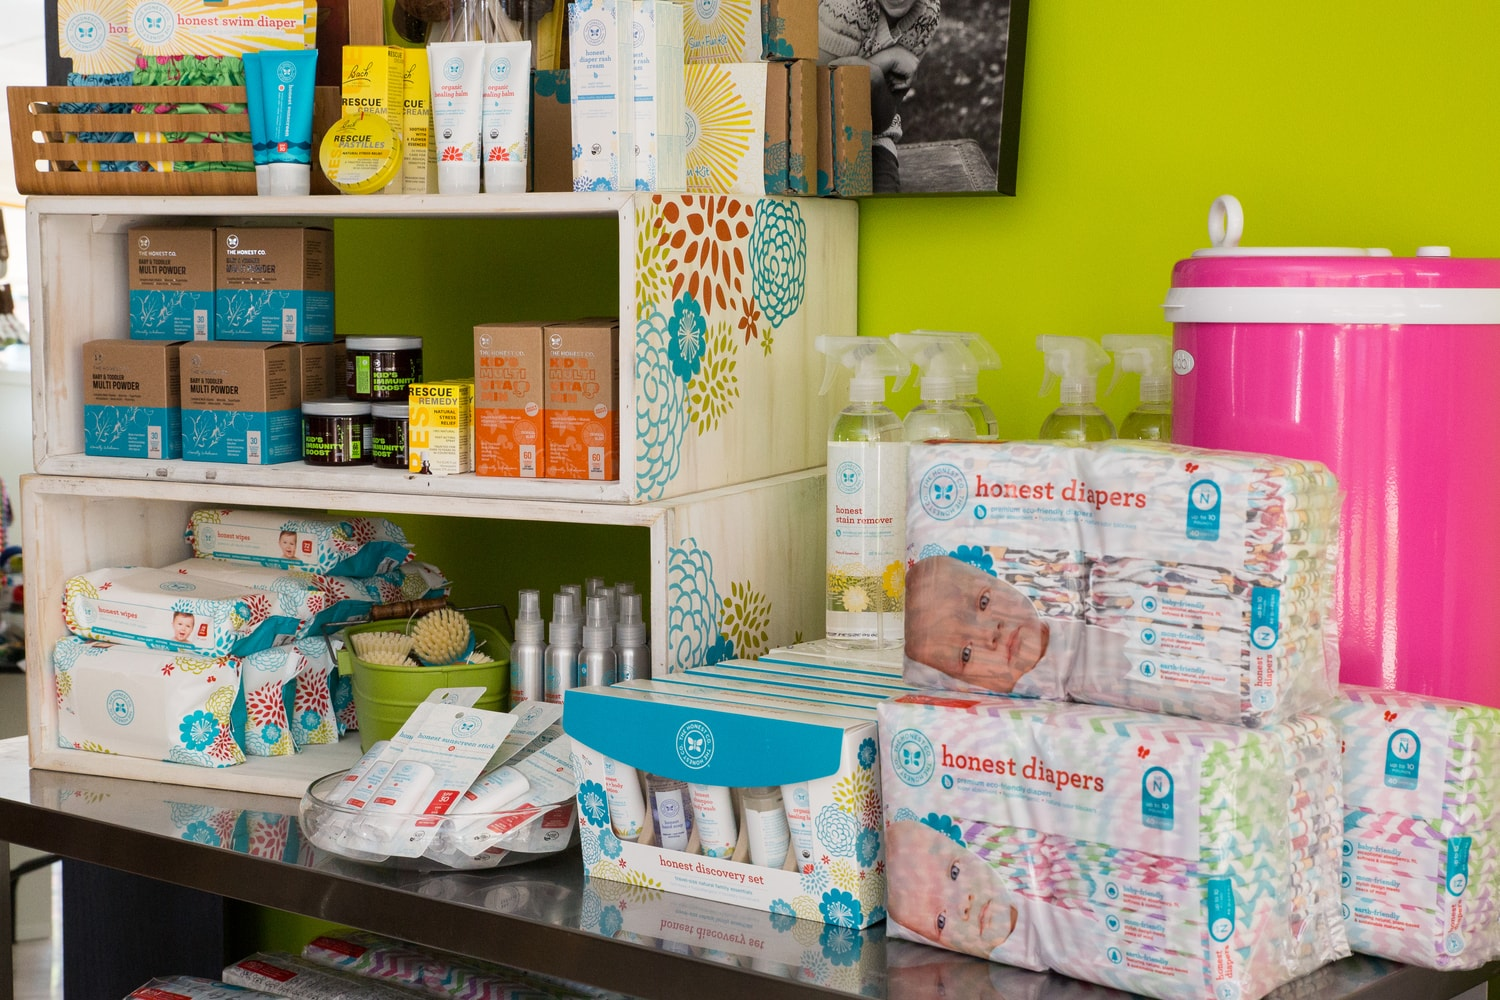 Premium Organic Diapers and Accessories | mama 'hood Maternity Store Denver & Boulder, CO